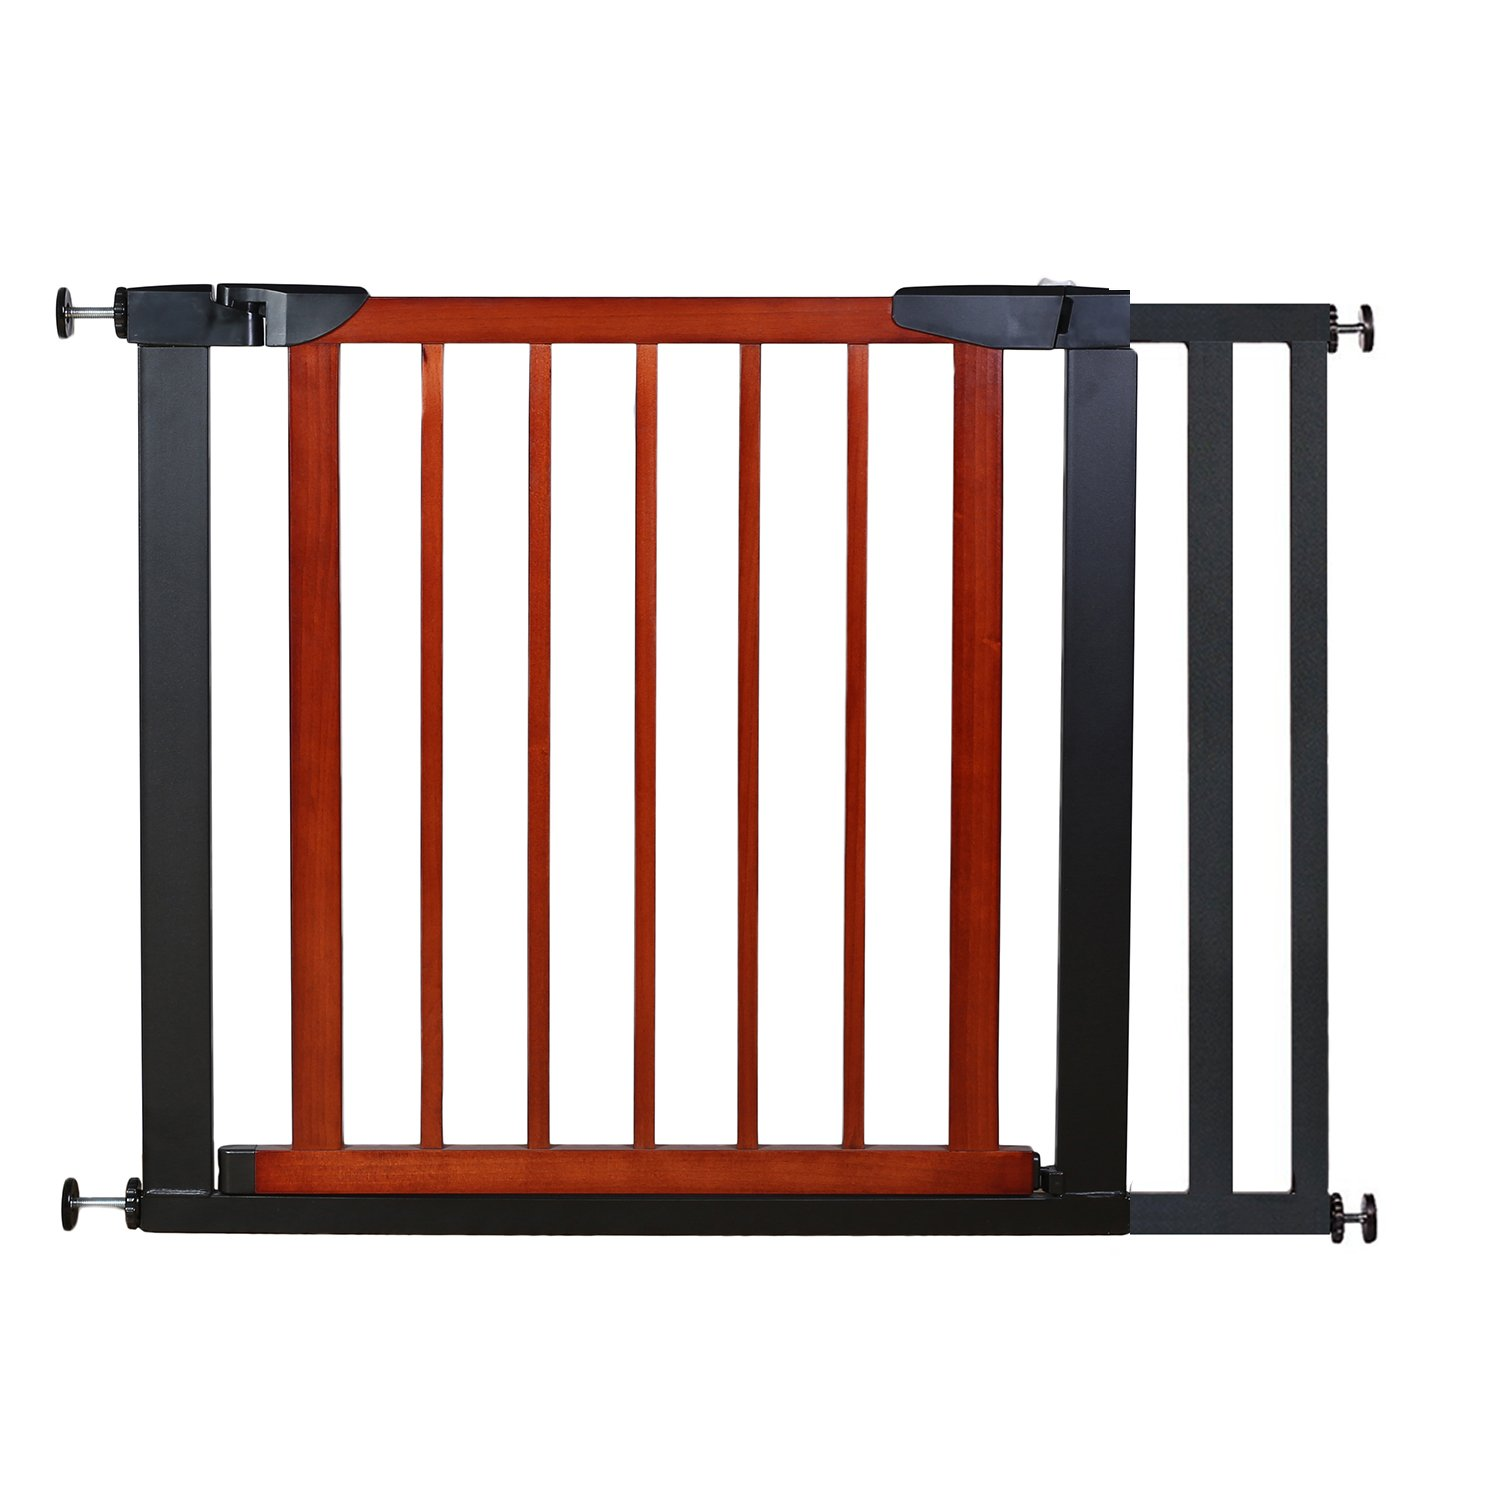 Fairy Baby Auto Close Baby Safety Gate Metal and Wood,Height 29 inch,Fit Spaces between 35.04''-37.80''